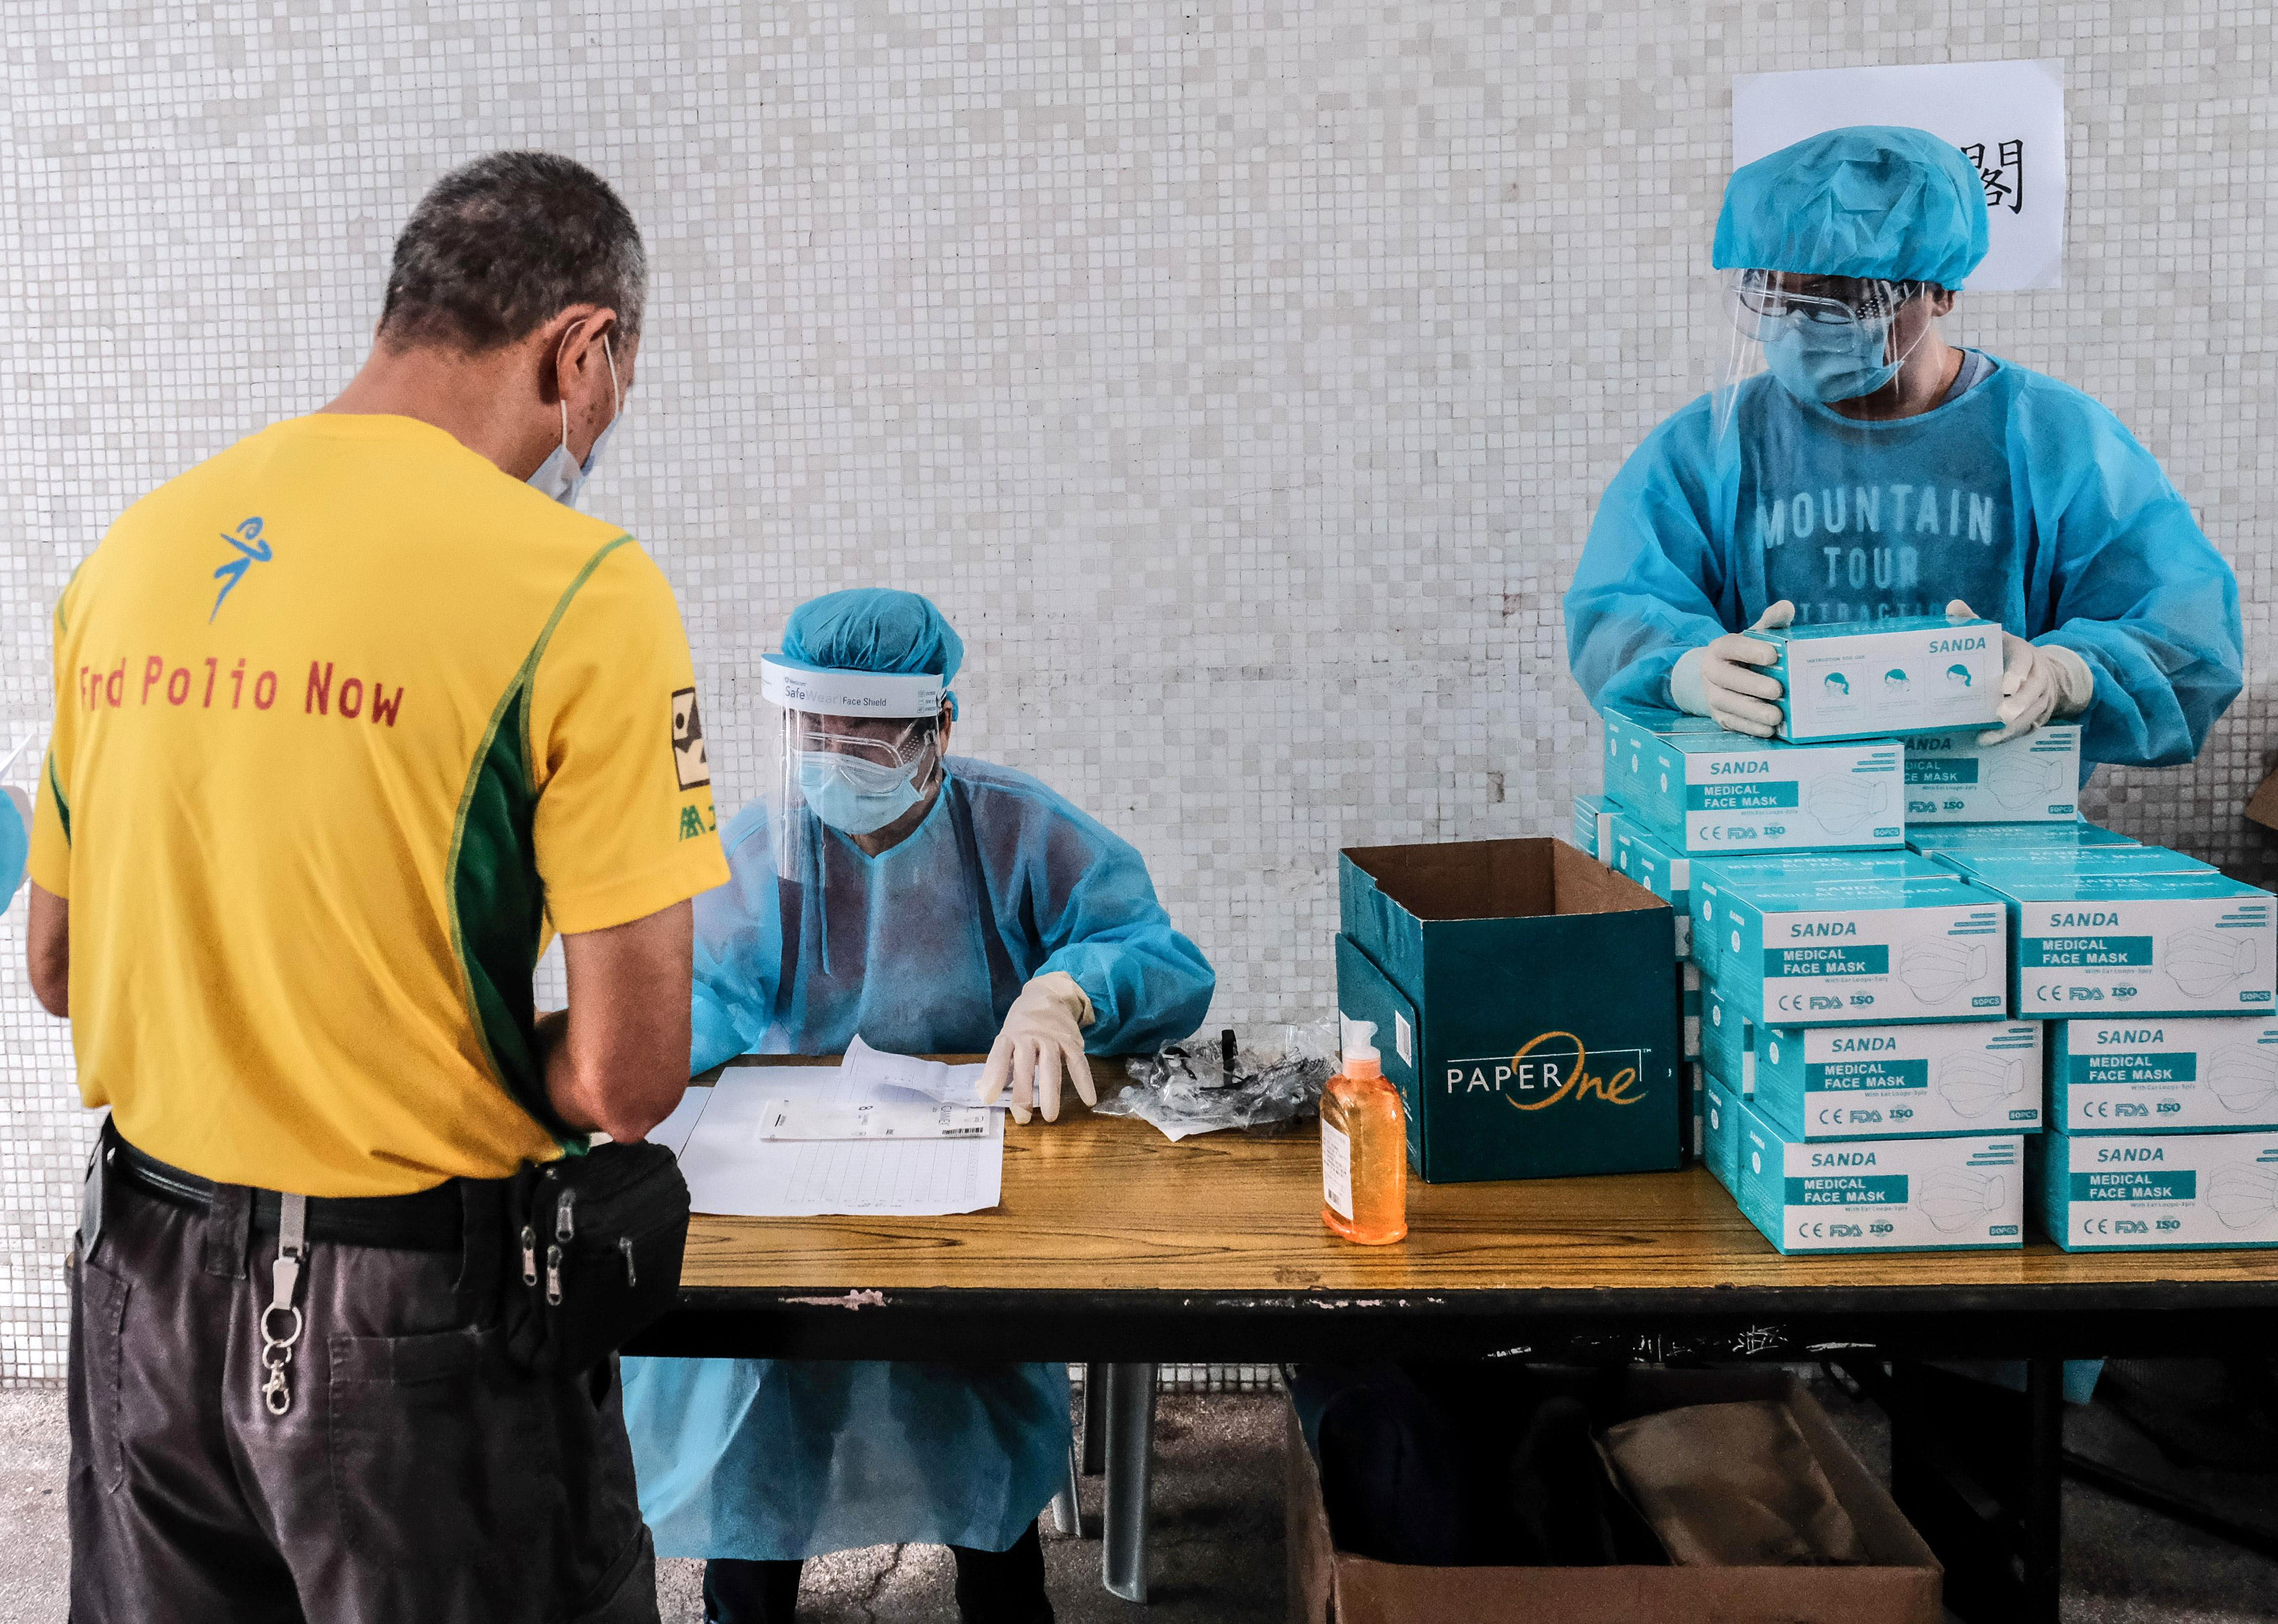 Medical workers hand out Covid-19 test kits at a residential block in Hong Kong on August 7.